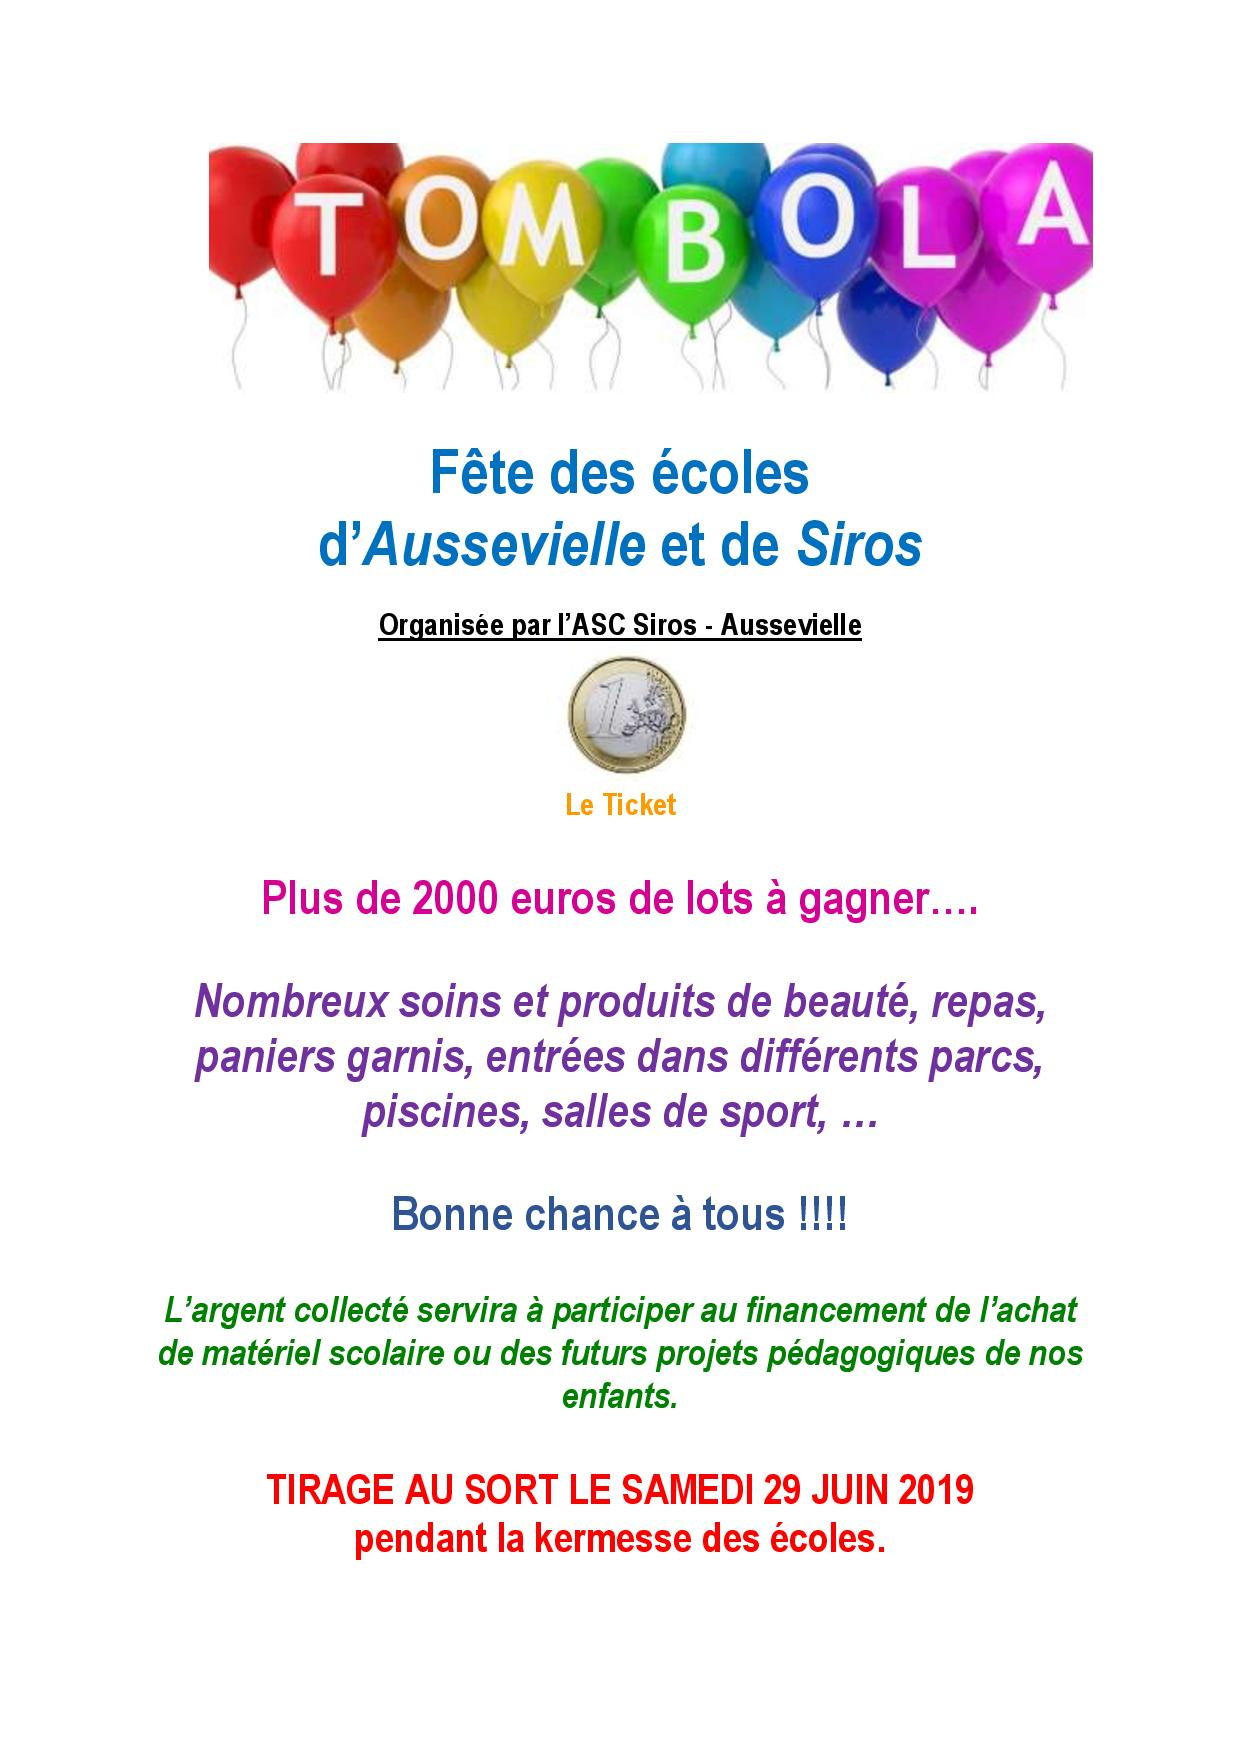 Affiche Tombola 2019 1 page 001 1